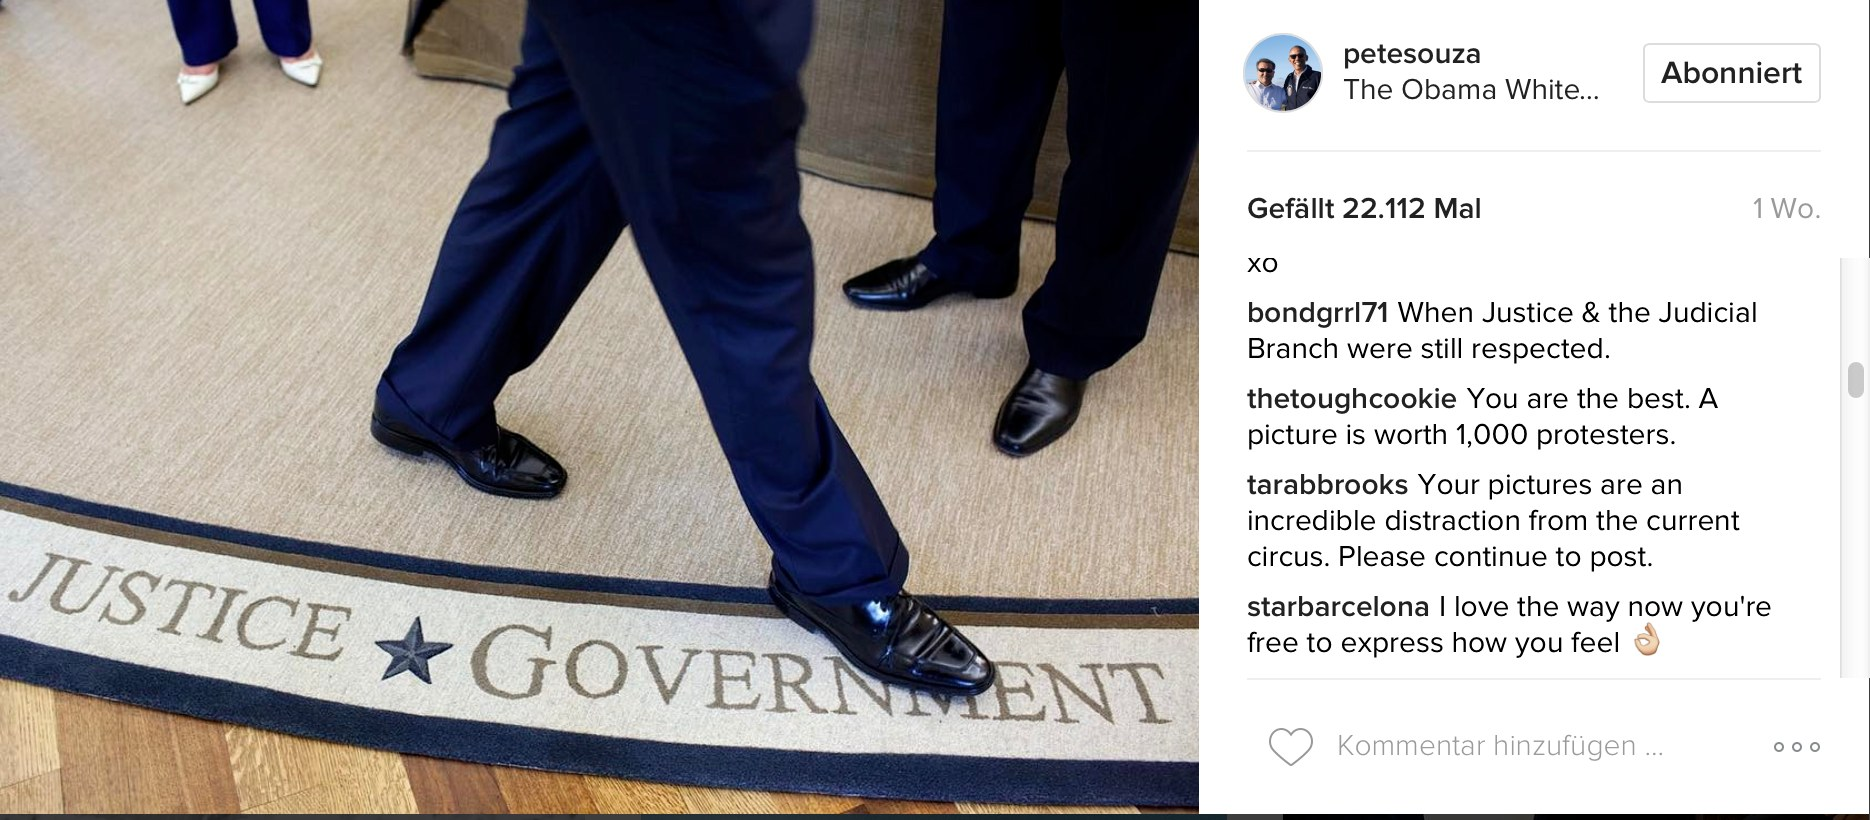 Pete Souza auf Instagram: Justice Government